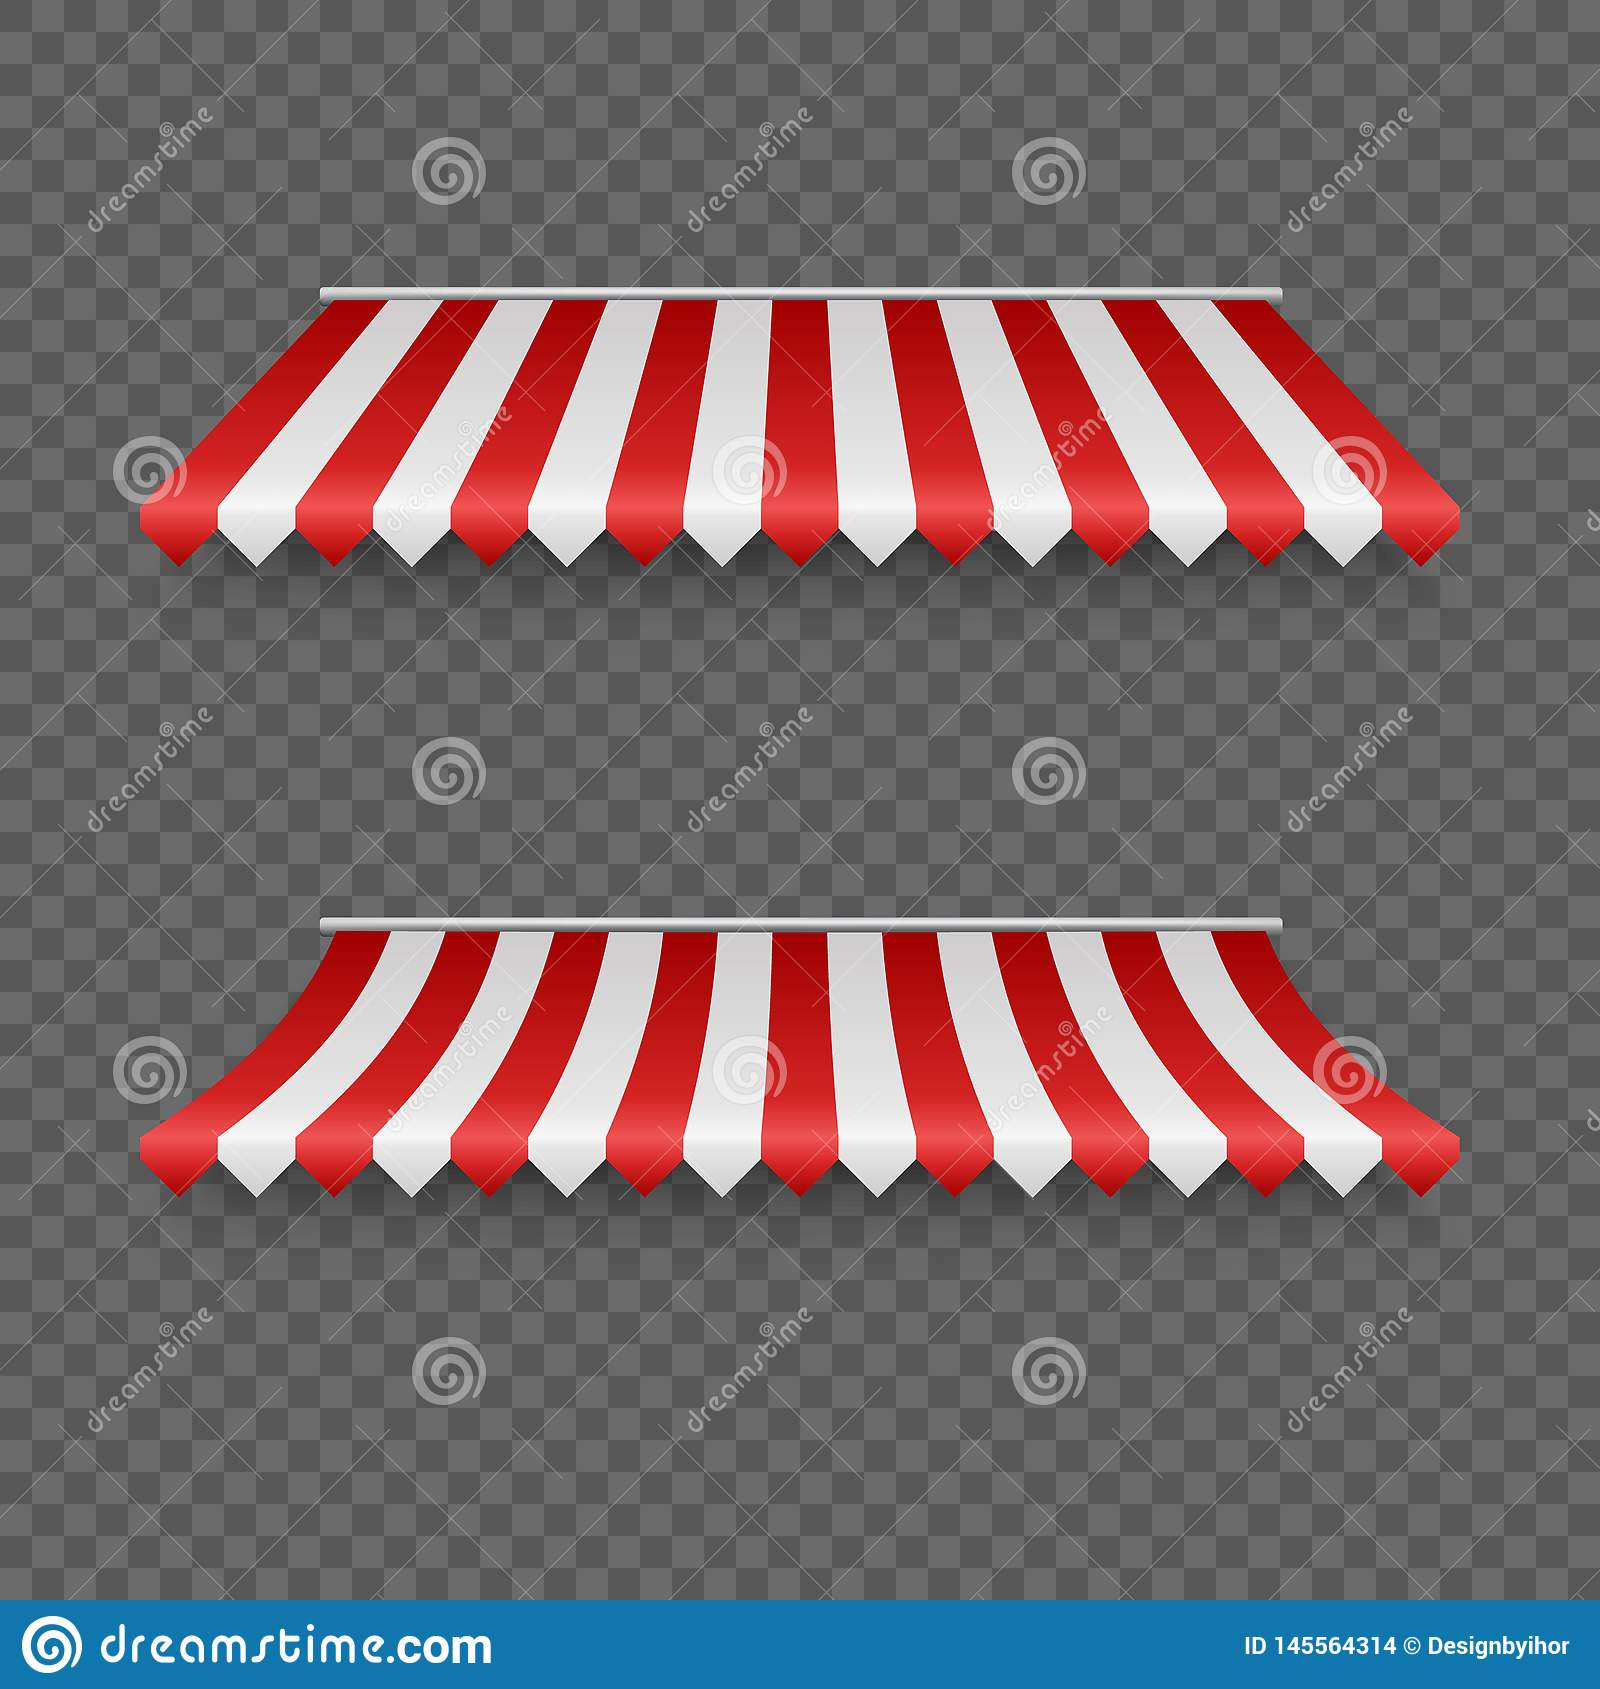 Outdoor awnings. Striped tents or textile roof for marketplace. Red and white sunshade. Vector illustration